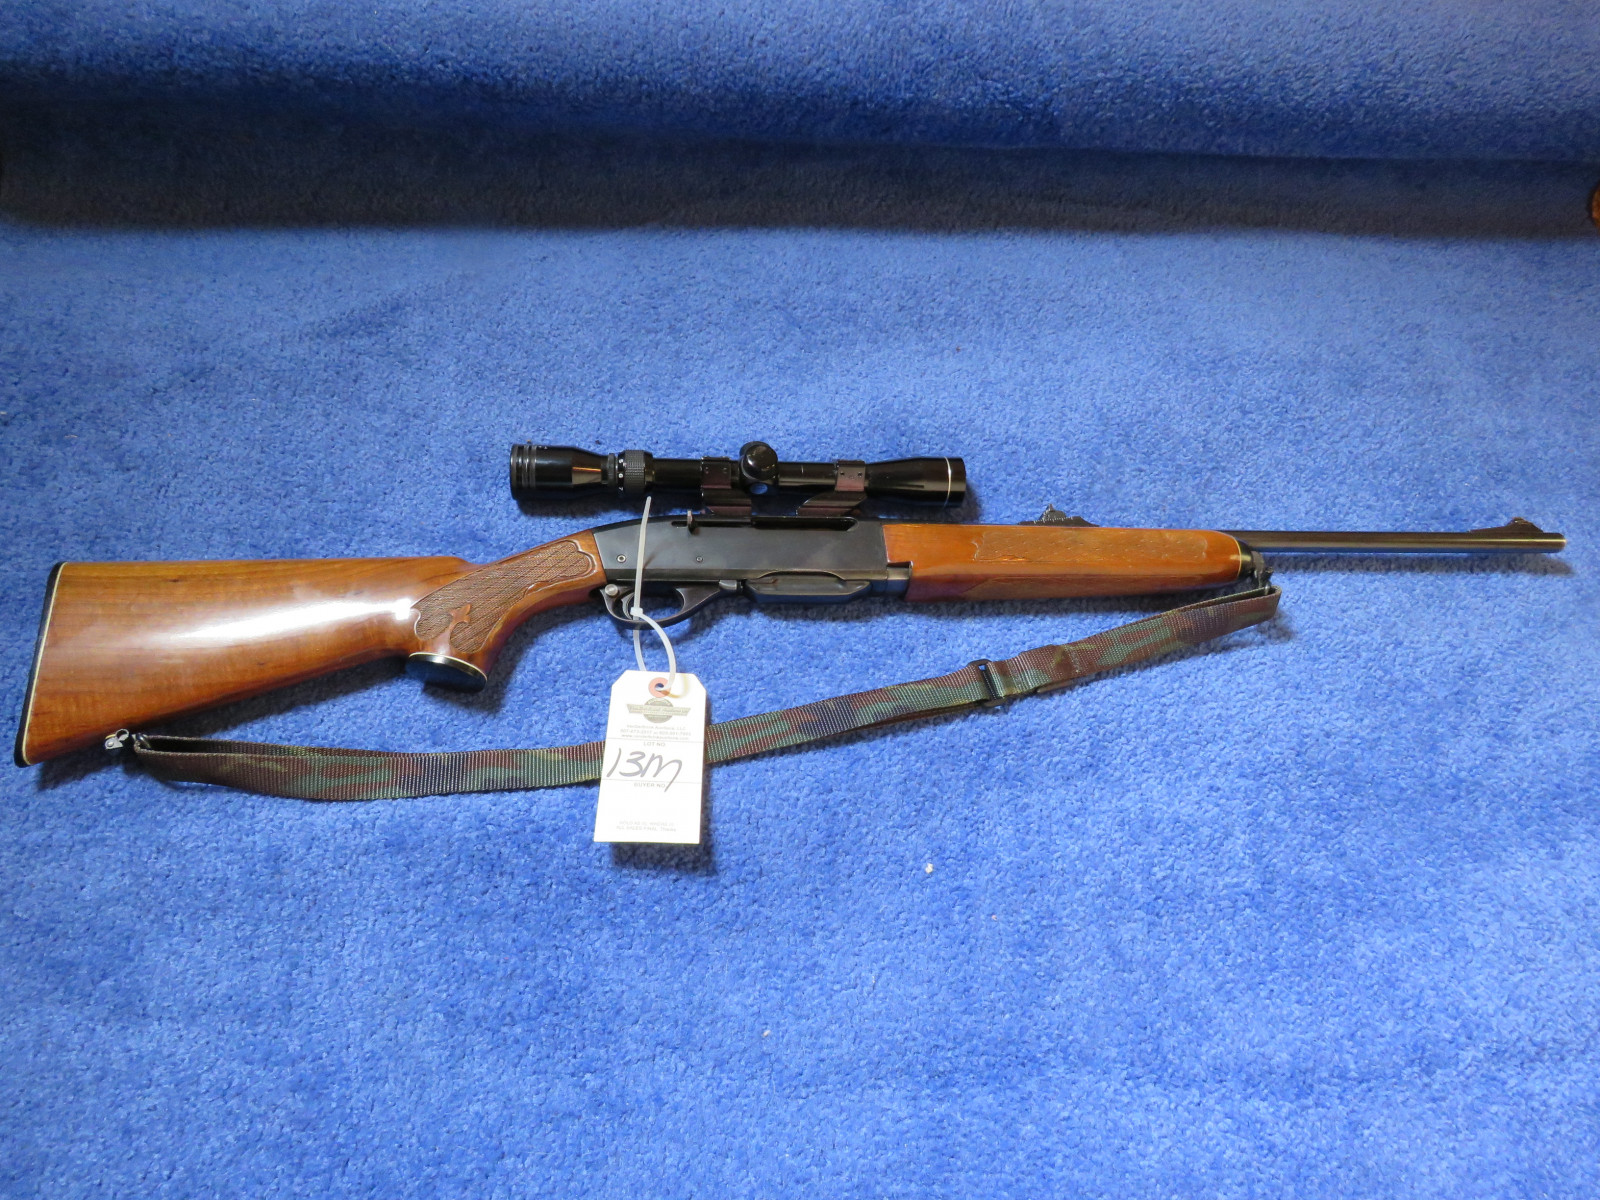 Remington 30.06 Model 742 Woodmaster Rifle - Image 1